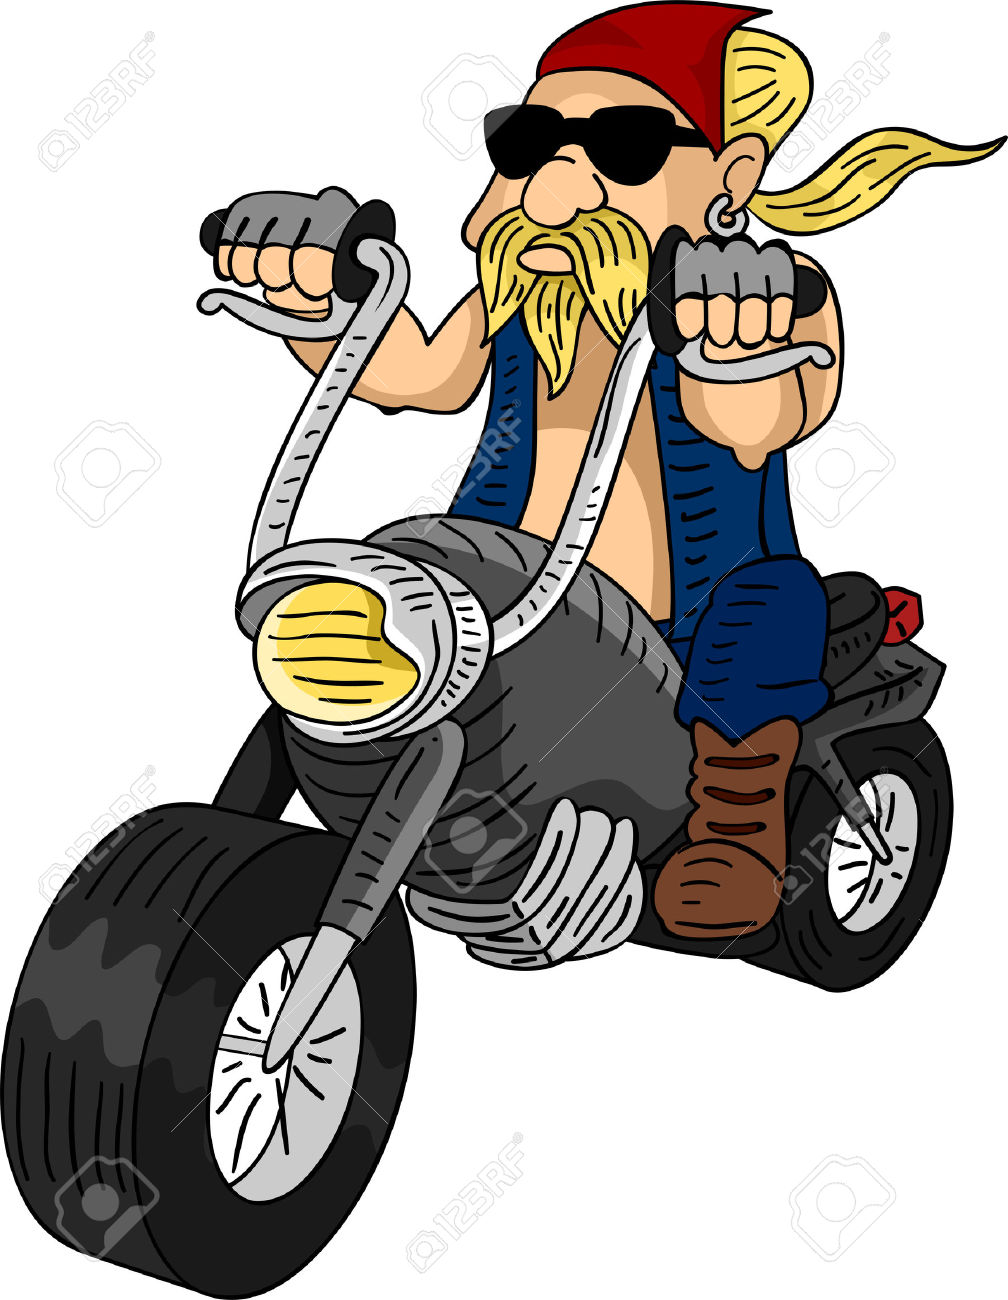 Illustration Of A Bearded Man Riding A Customized Motorcycle Stock.